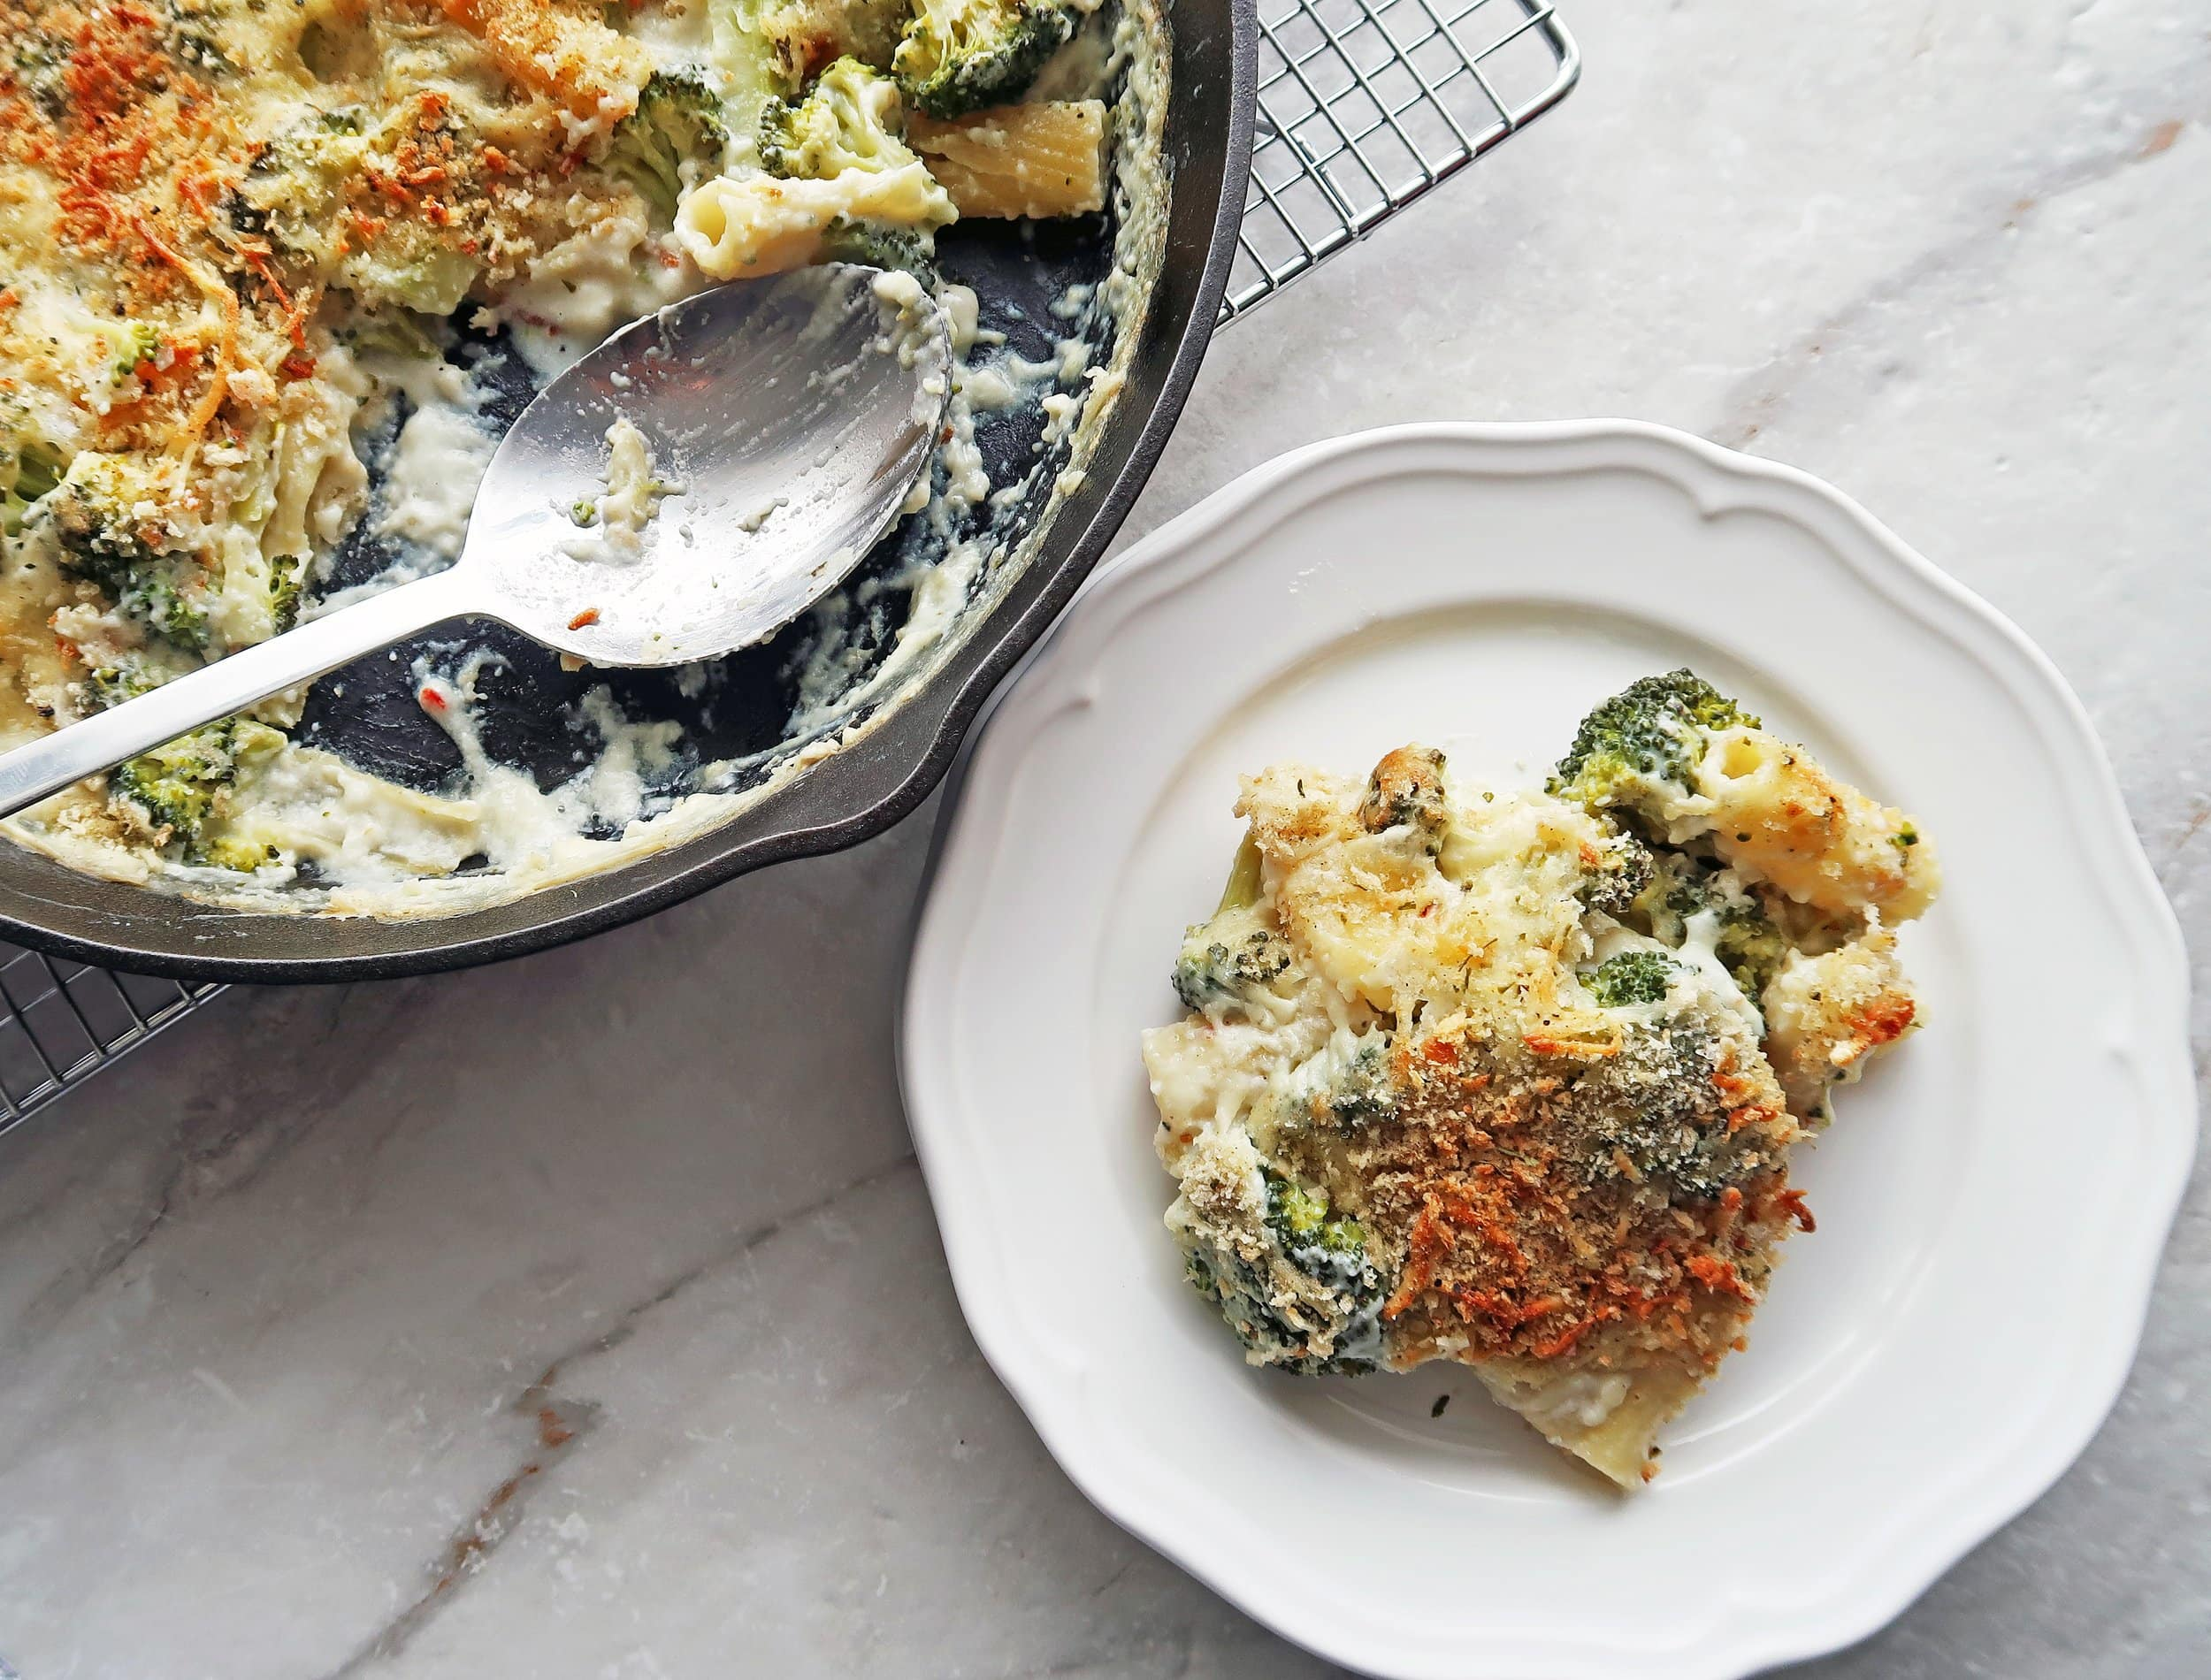 One Skillet Pasta Bake with Broccoli and White Cheese Sauce